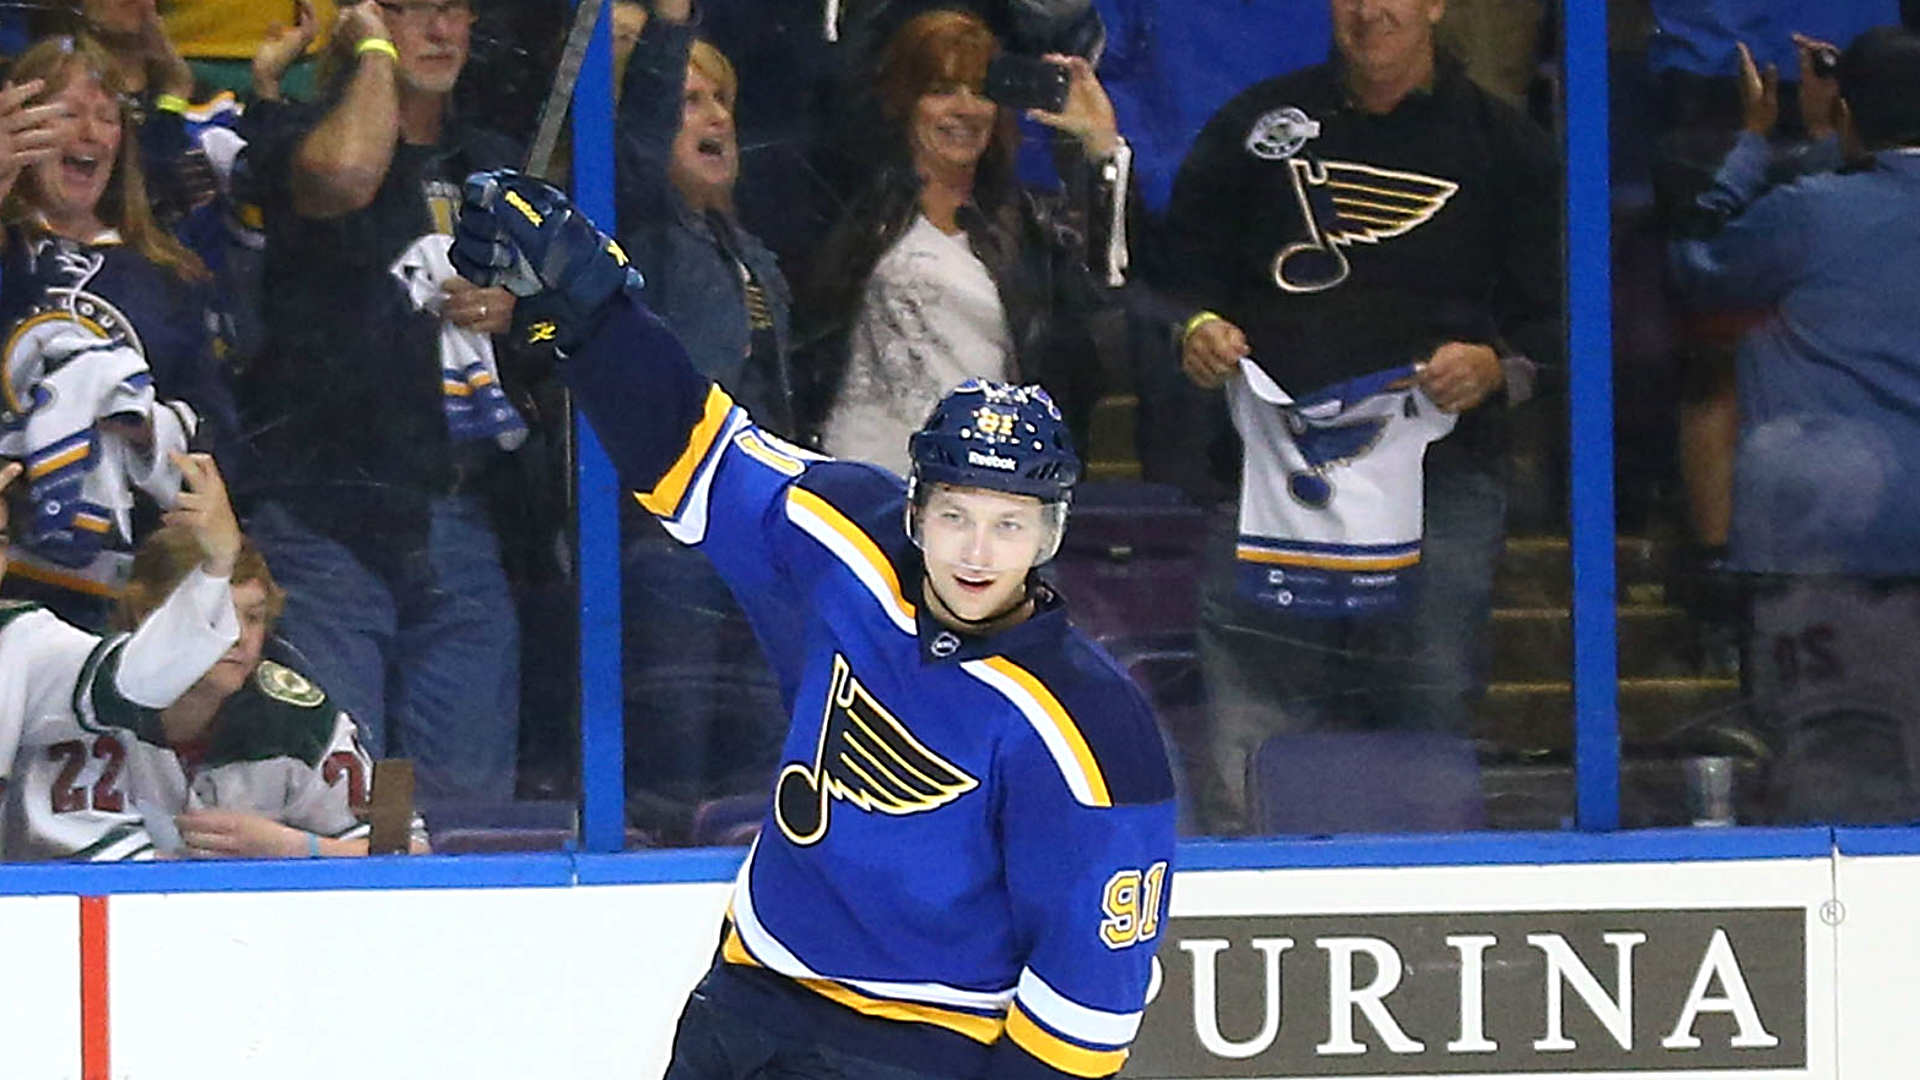 Stanley Cup playoffs roundup: Things even out for Lightning, Blues and Penguins